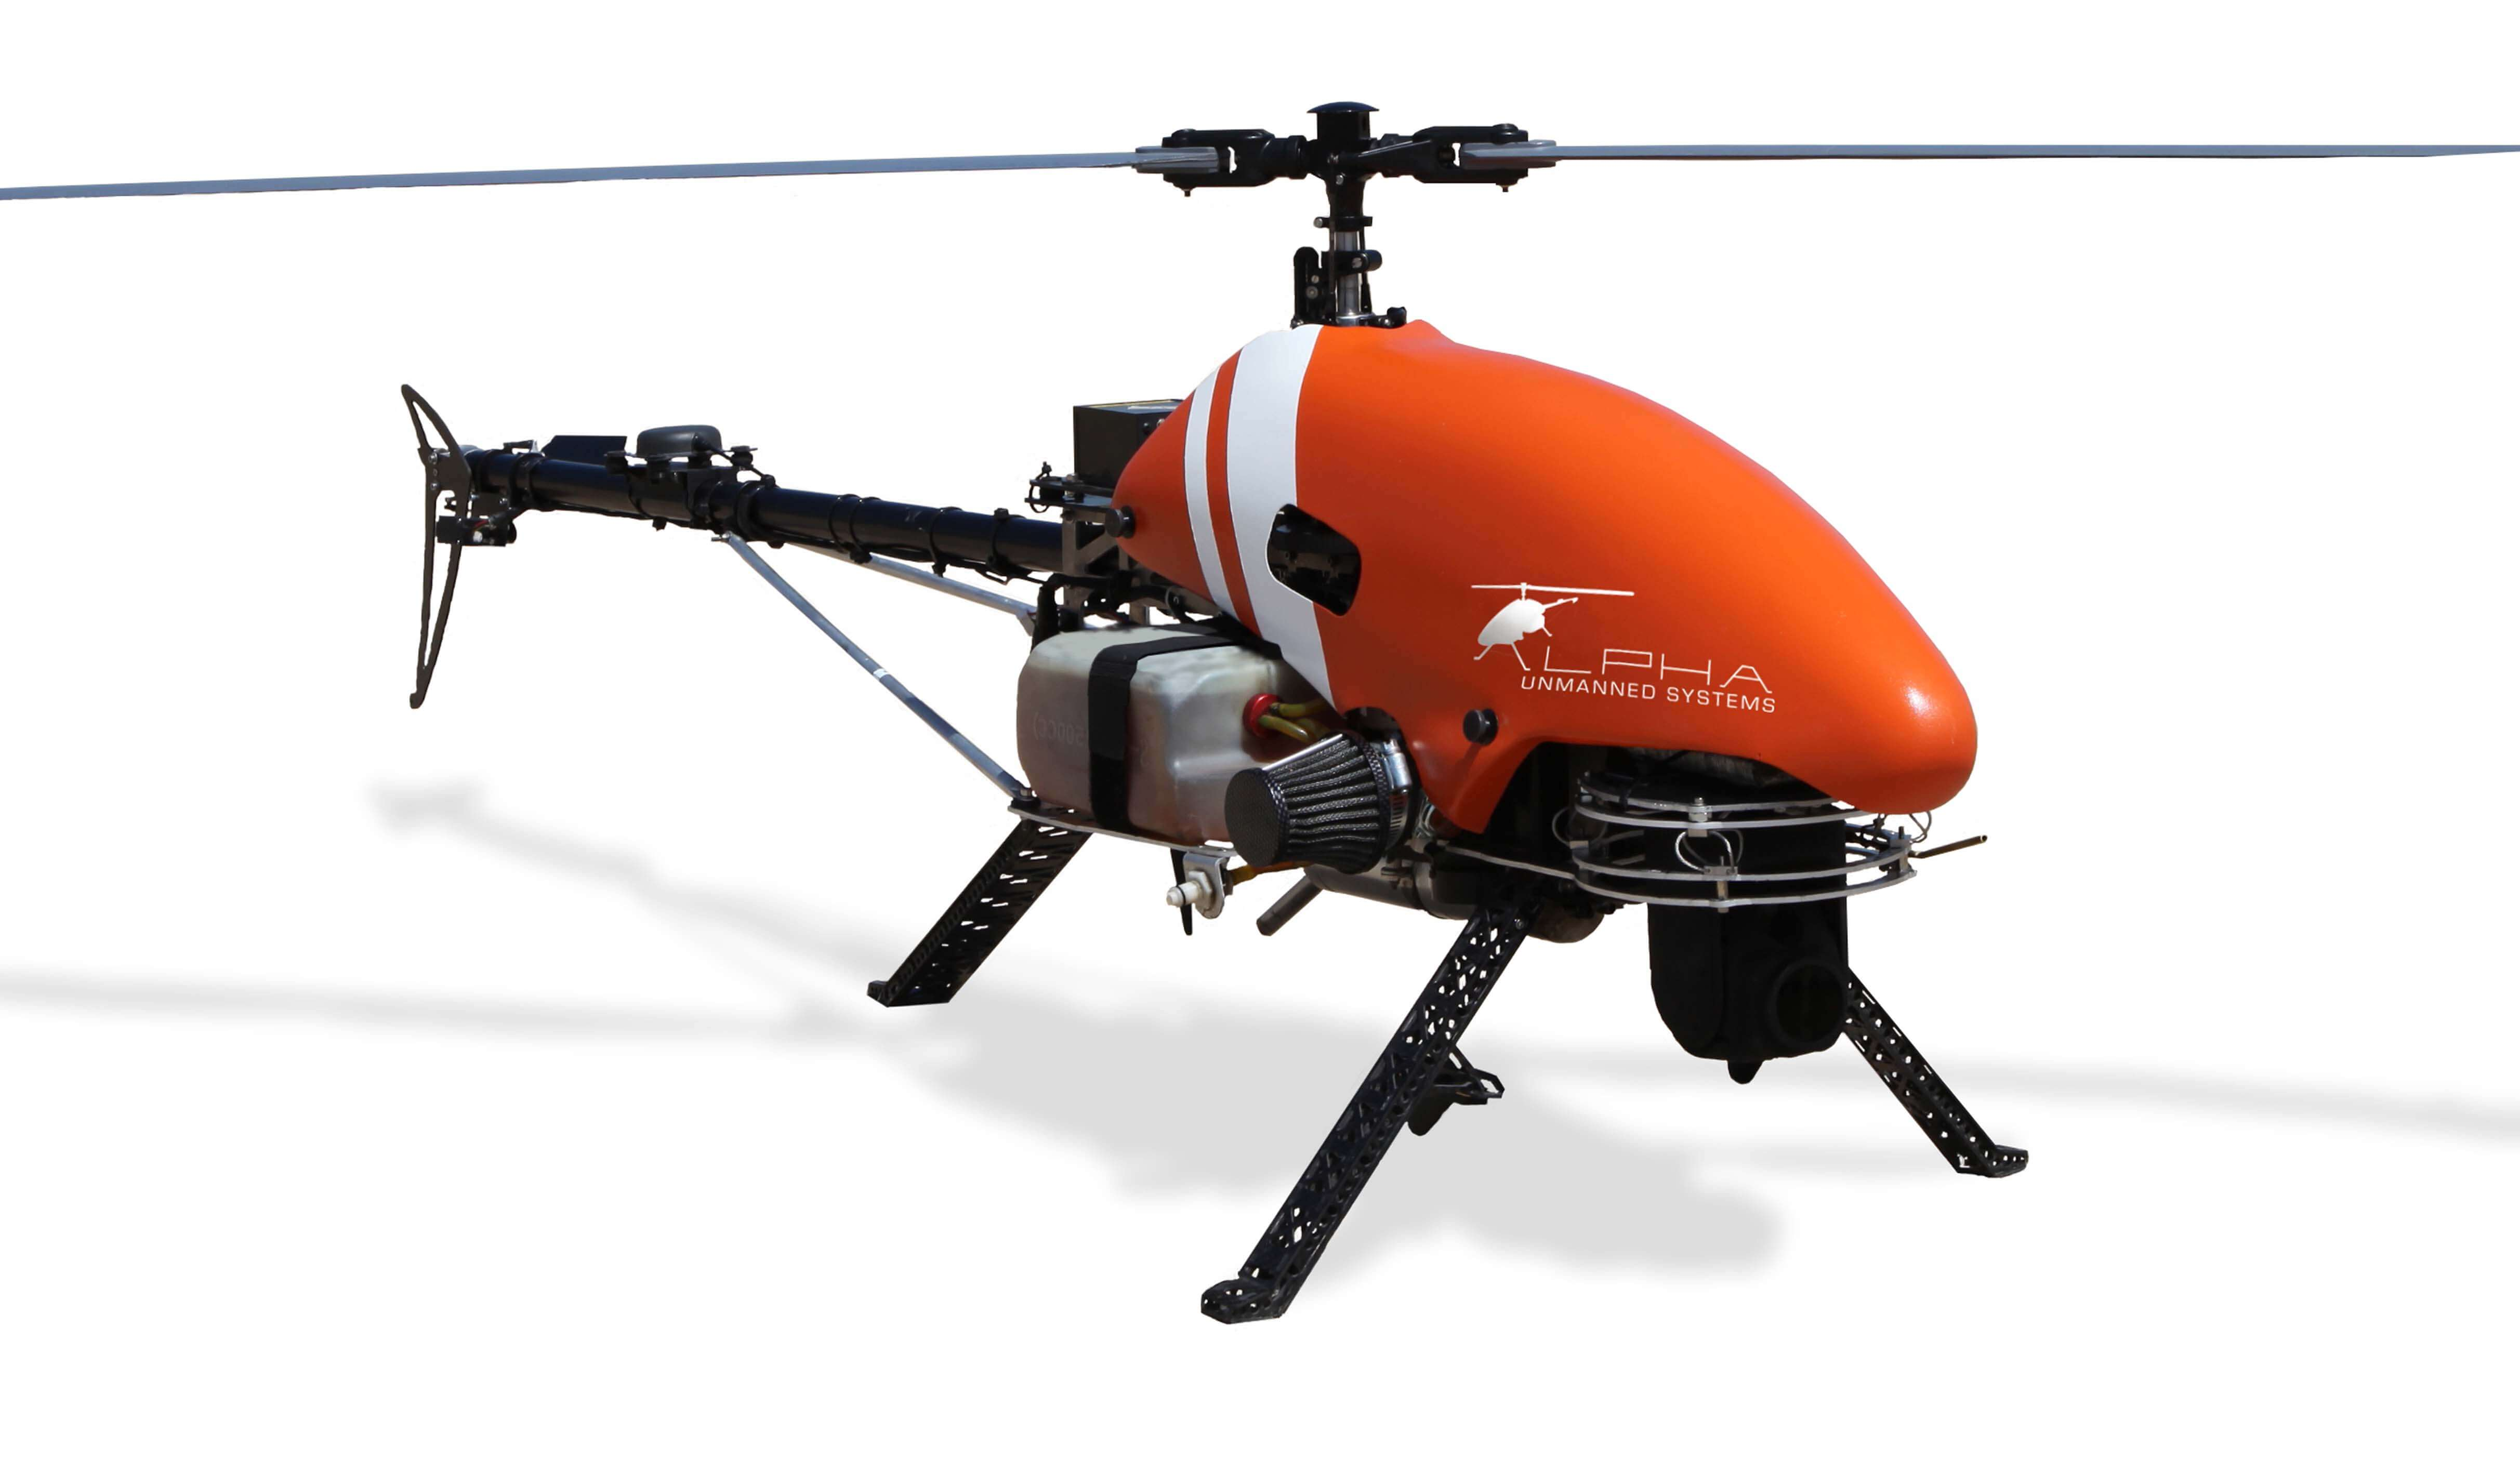 7 Best Helicopter Drones for Sale 2020 - Review & Comparison